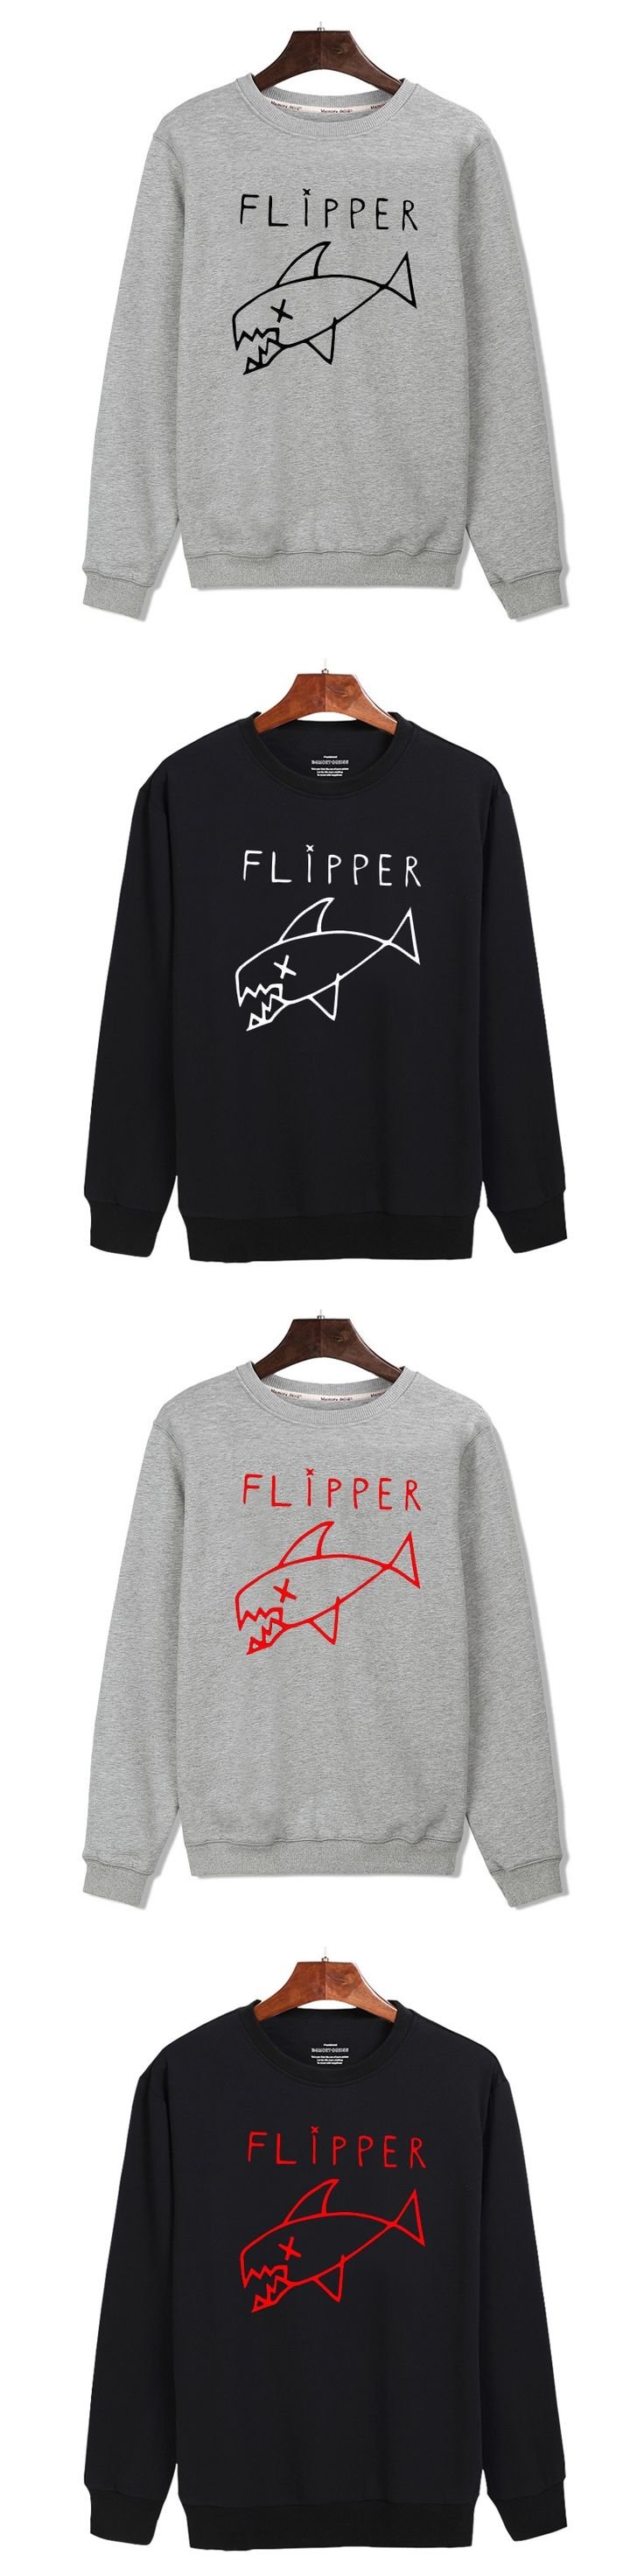 BTS Cartoon Flipper Fish Capless Sweatshirt Men Hoodie Winter Funny Hoodies Men Hip Hop Fashion Casual XXS-4XL Shark Clothes